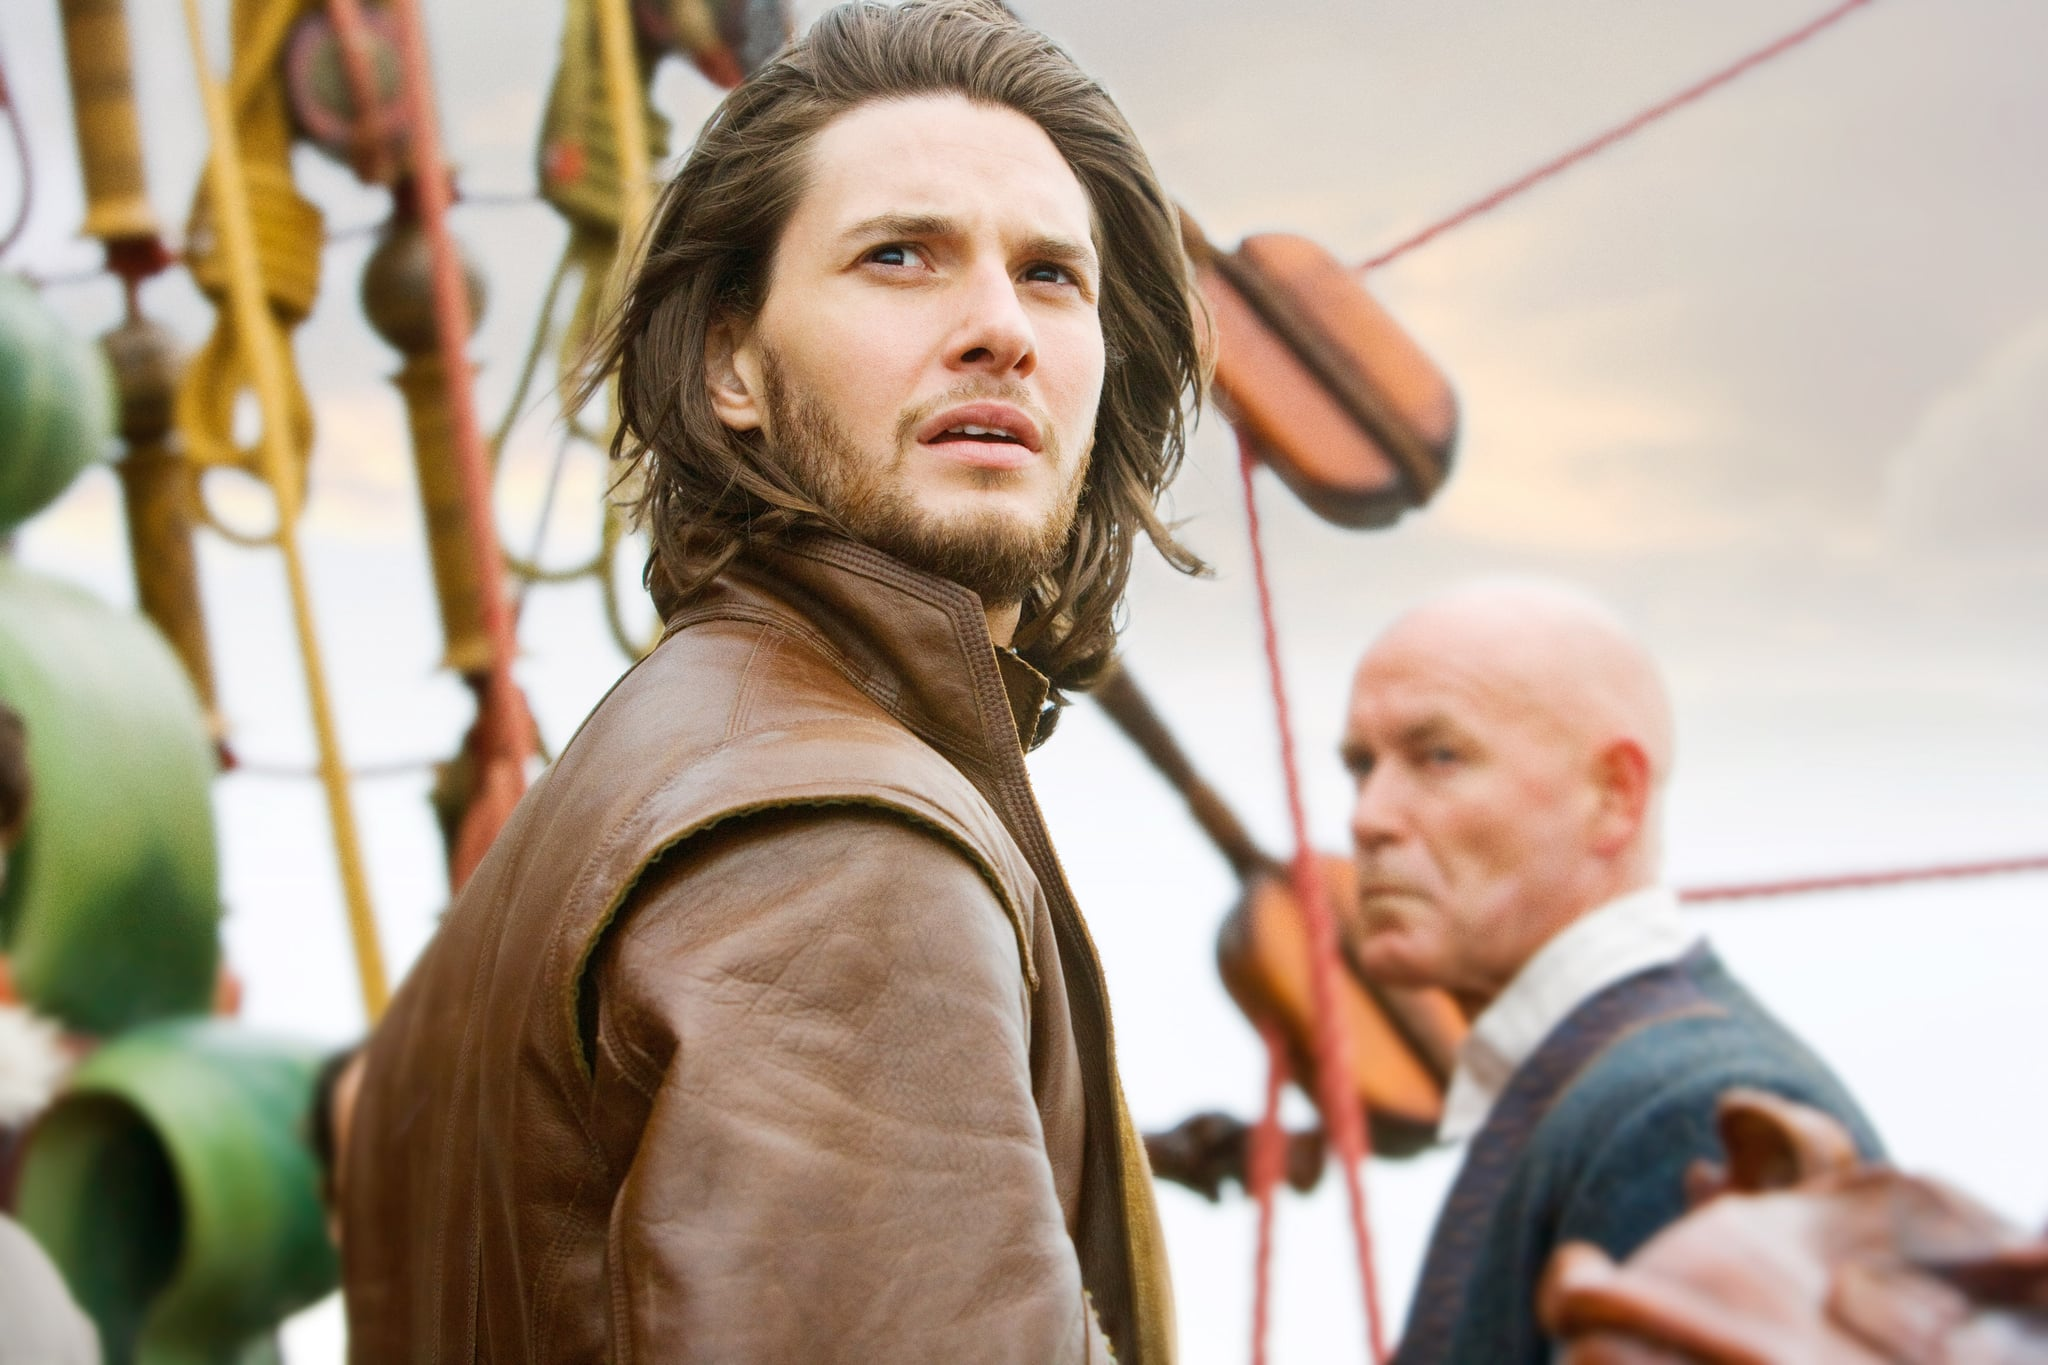 THE CHRONICLES OF NARNIA: THE VOYAGE OF THE DAWN TREADER, Ben Barnes, 2010. TM & Twentieth Century Fox Film Corp. All rights reserved/courtesy Everett Collection